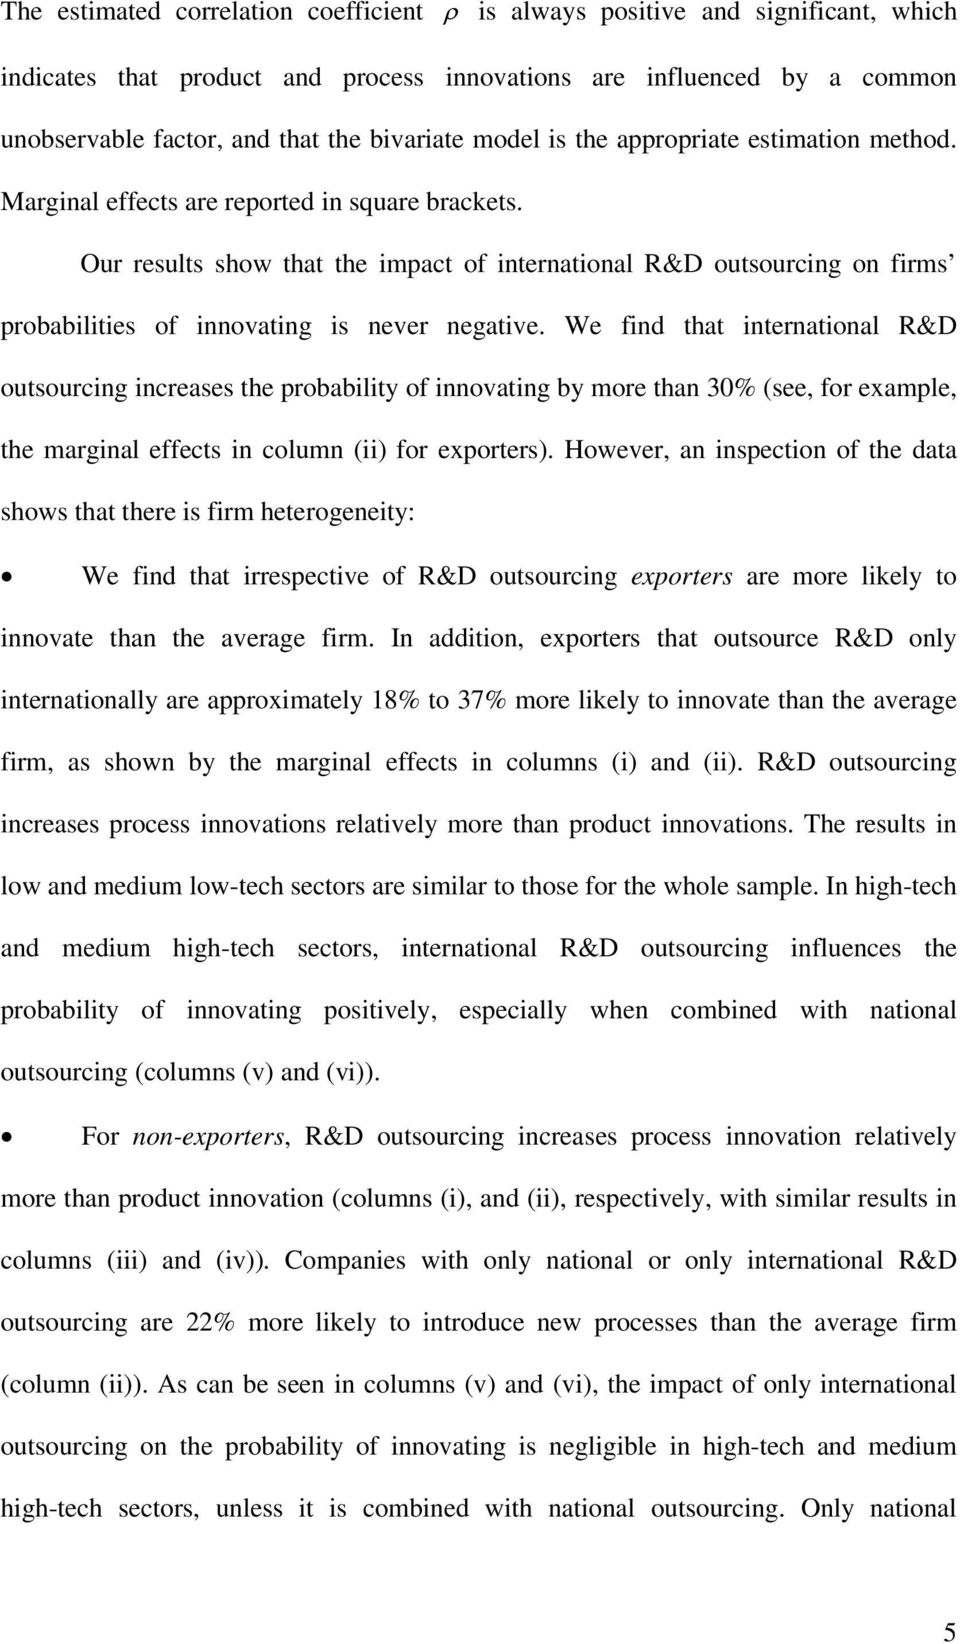 Our results show that the impact of international R&D outsourcing on firms probabilities of innovating is never negative.